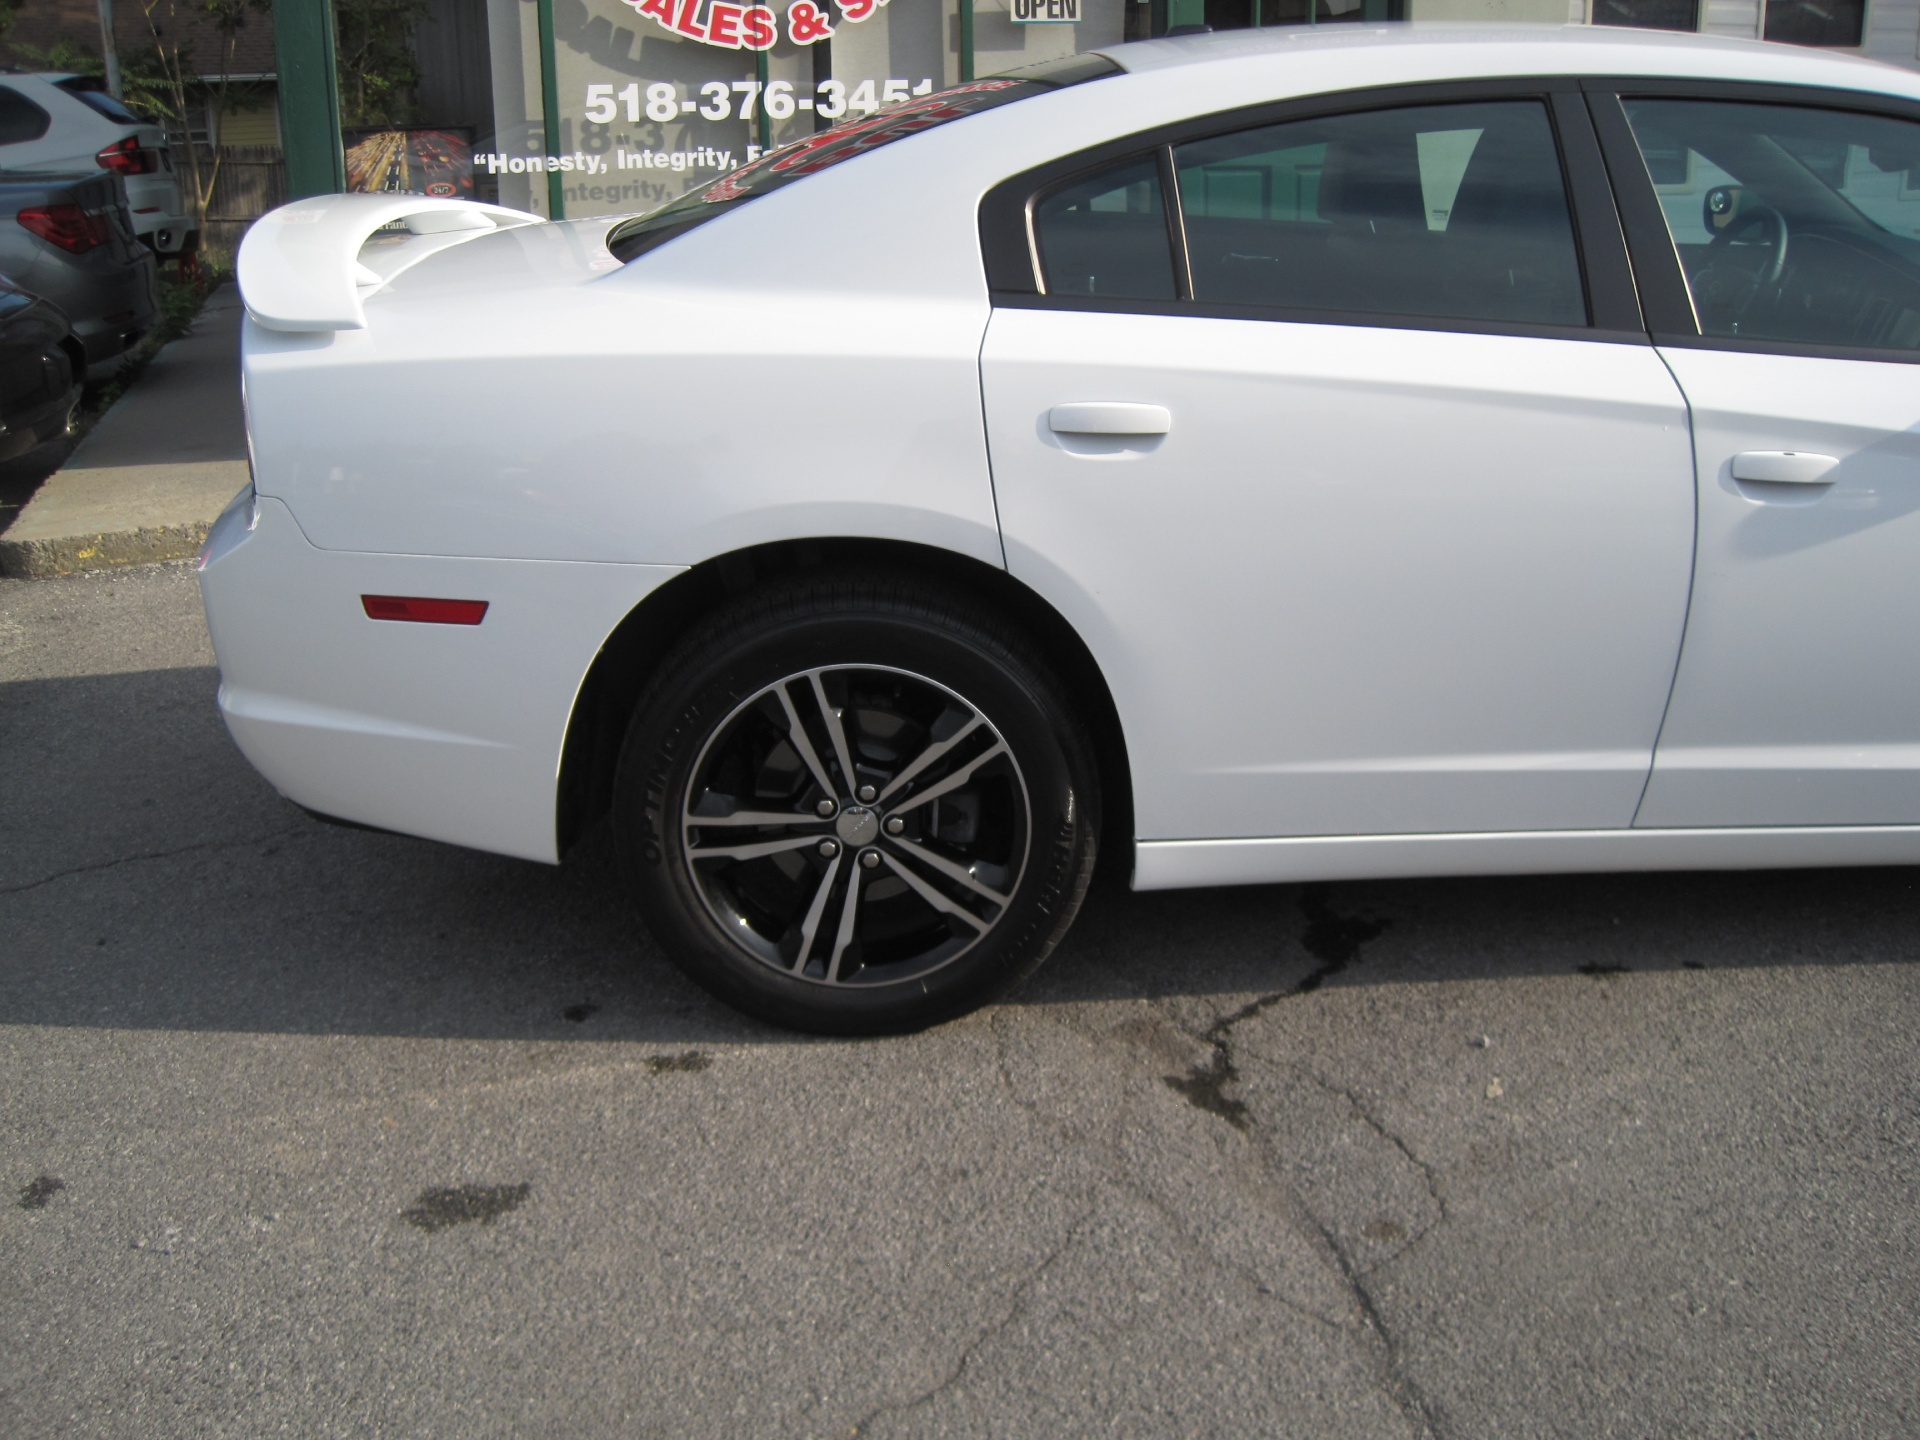 2014 Dodge Charger Sxt Plus Like New Low Miles Loaded Navigation Leather Heated Seats Back Up